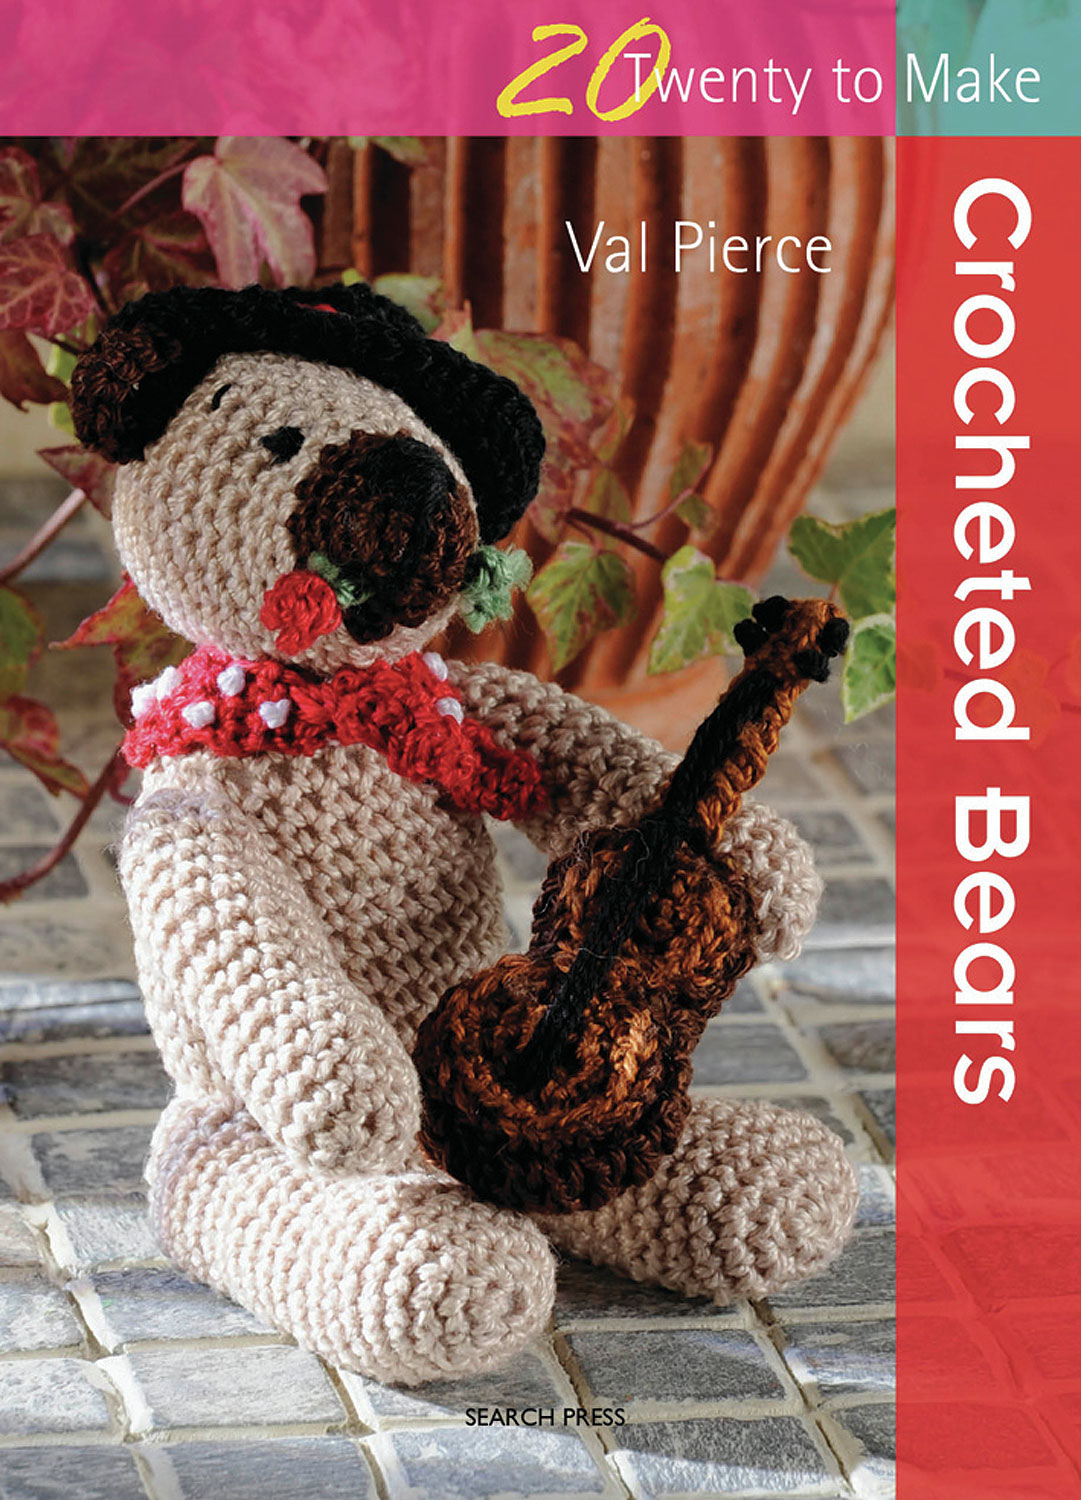 Crocheted Bears By: Val Pierce